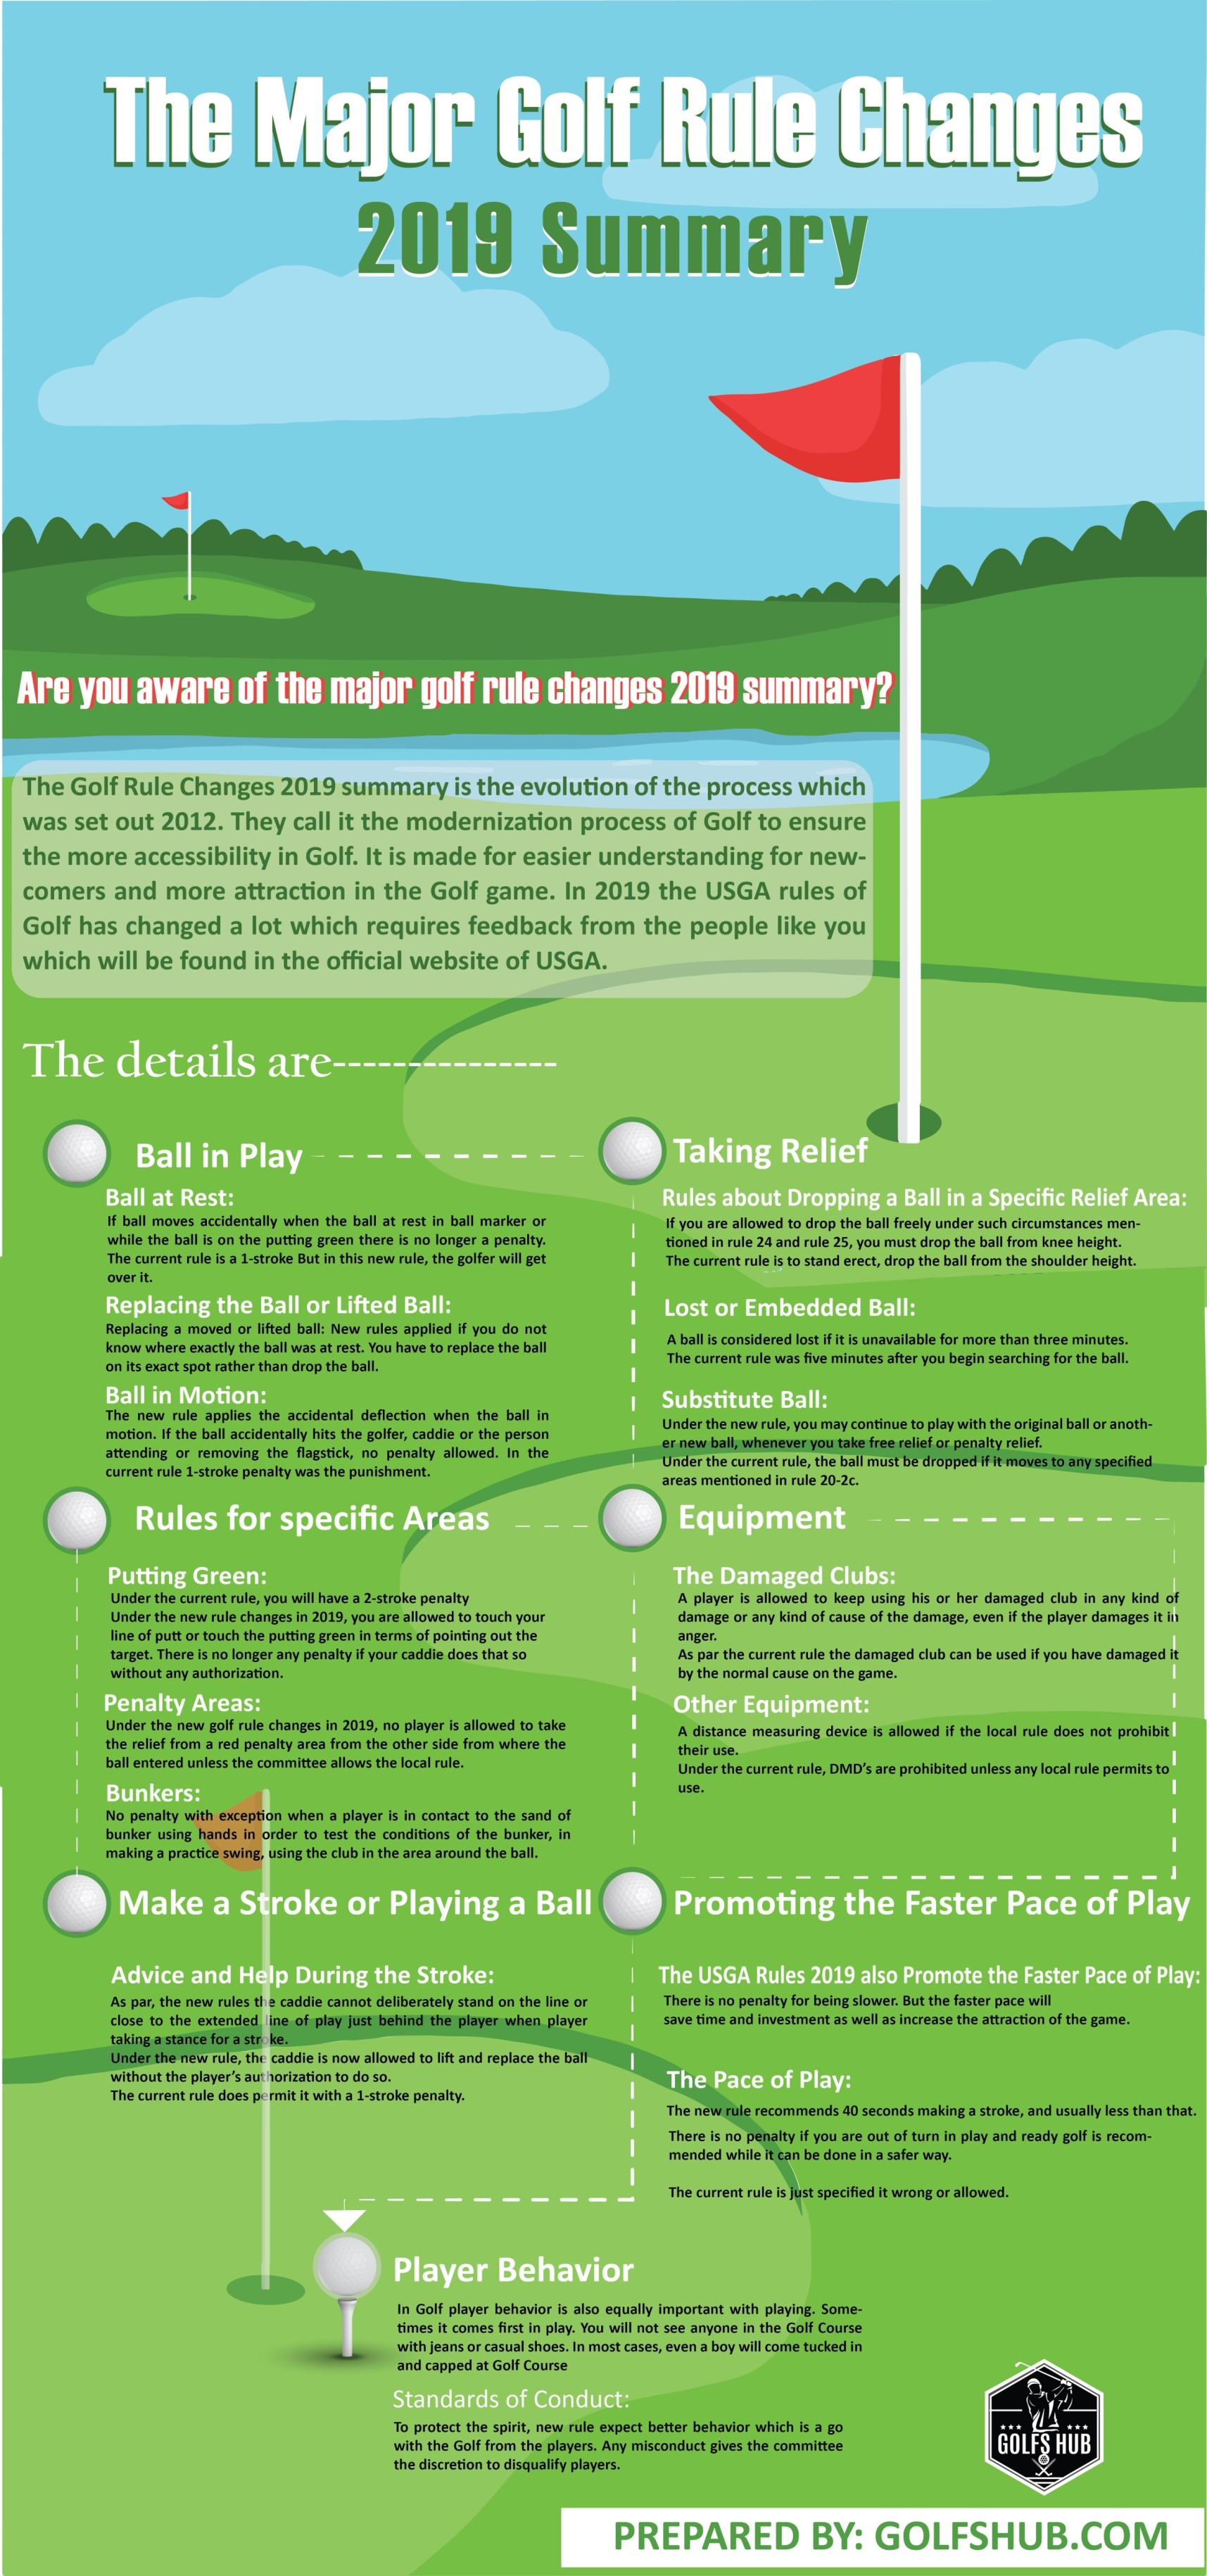 The Major Golf Rule Changes 2019 Summary